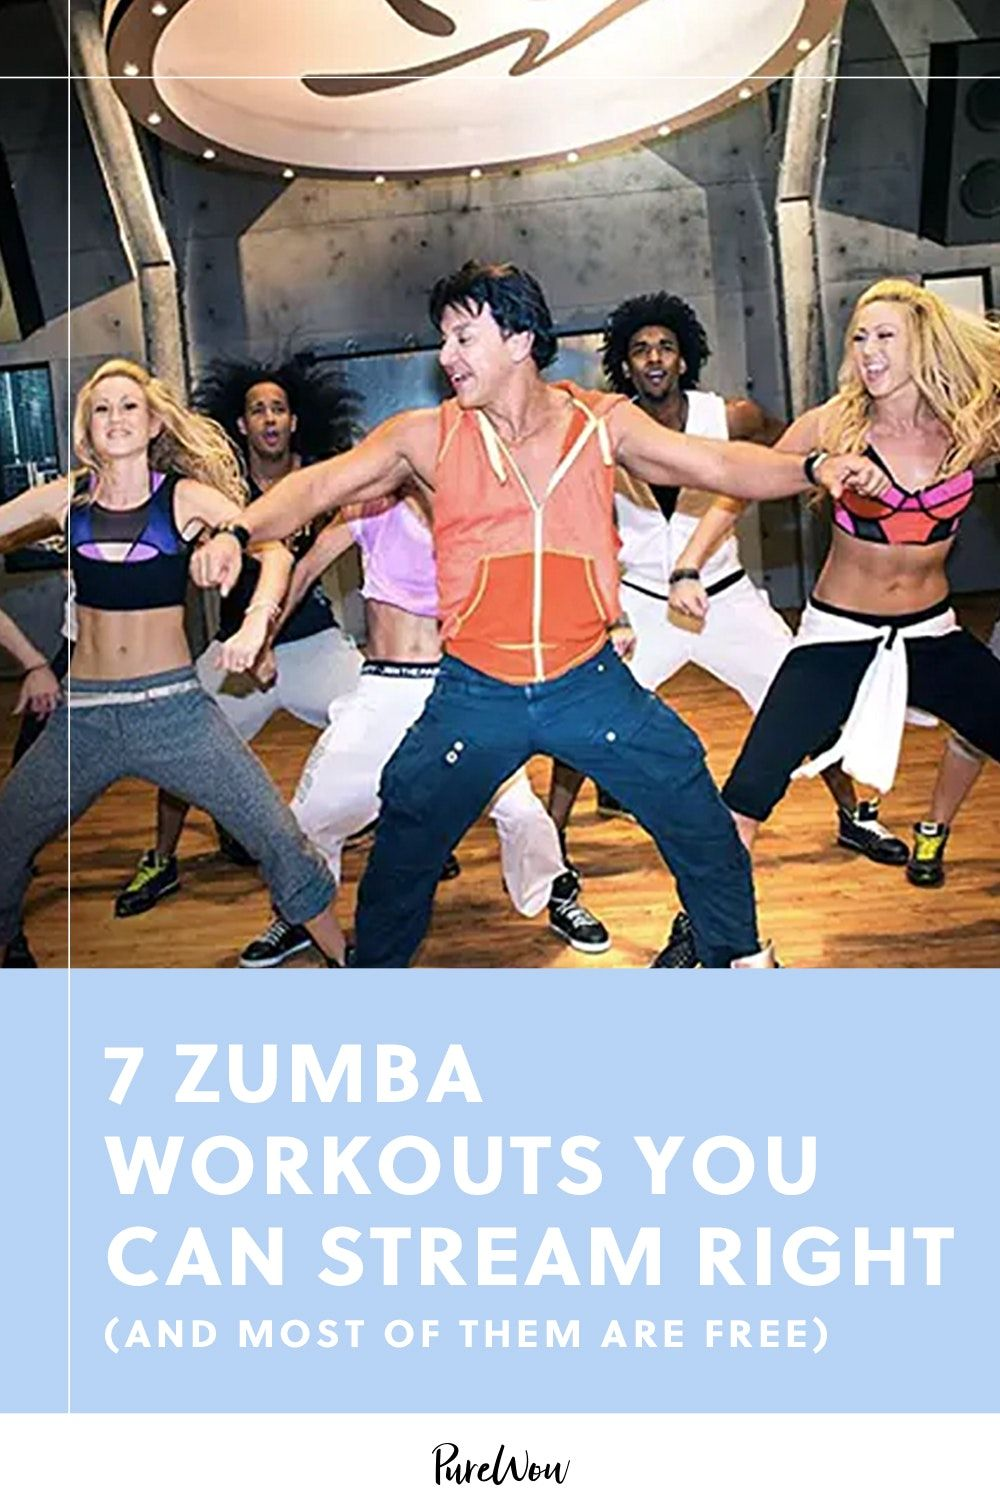 7 Zumba Workouts You Can Stream Right Now (and Most of